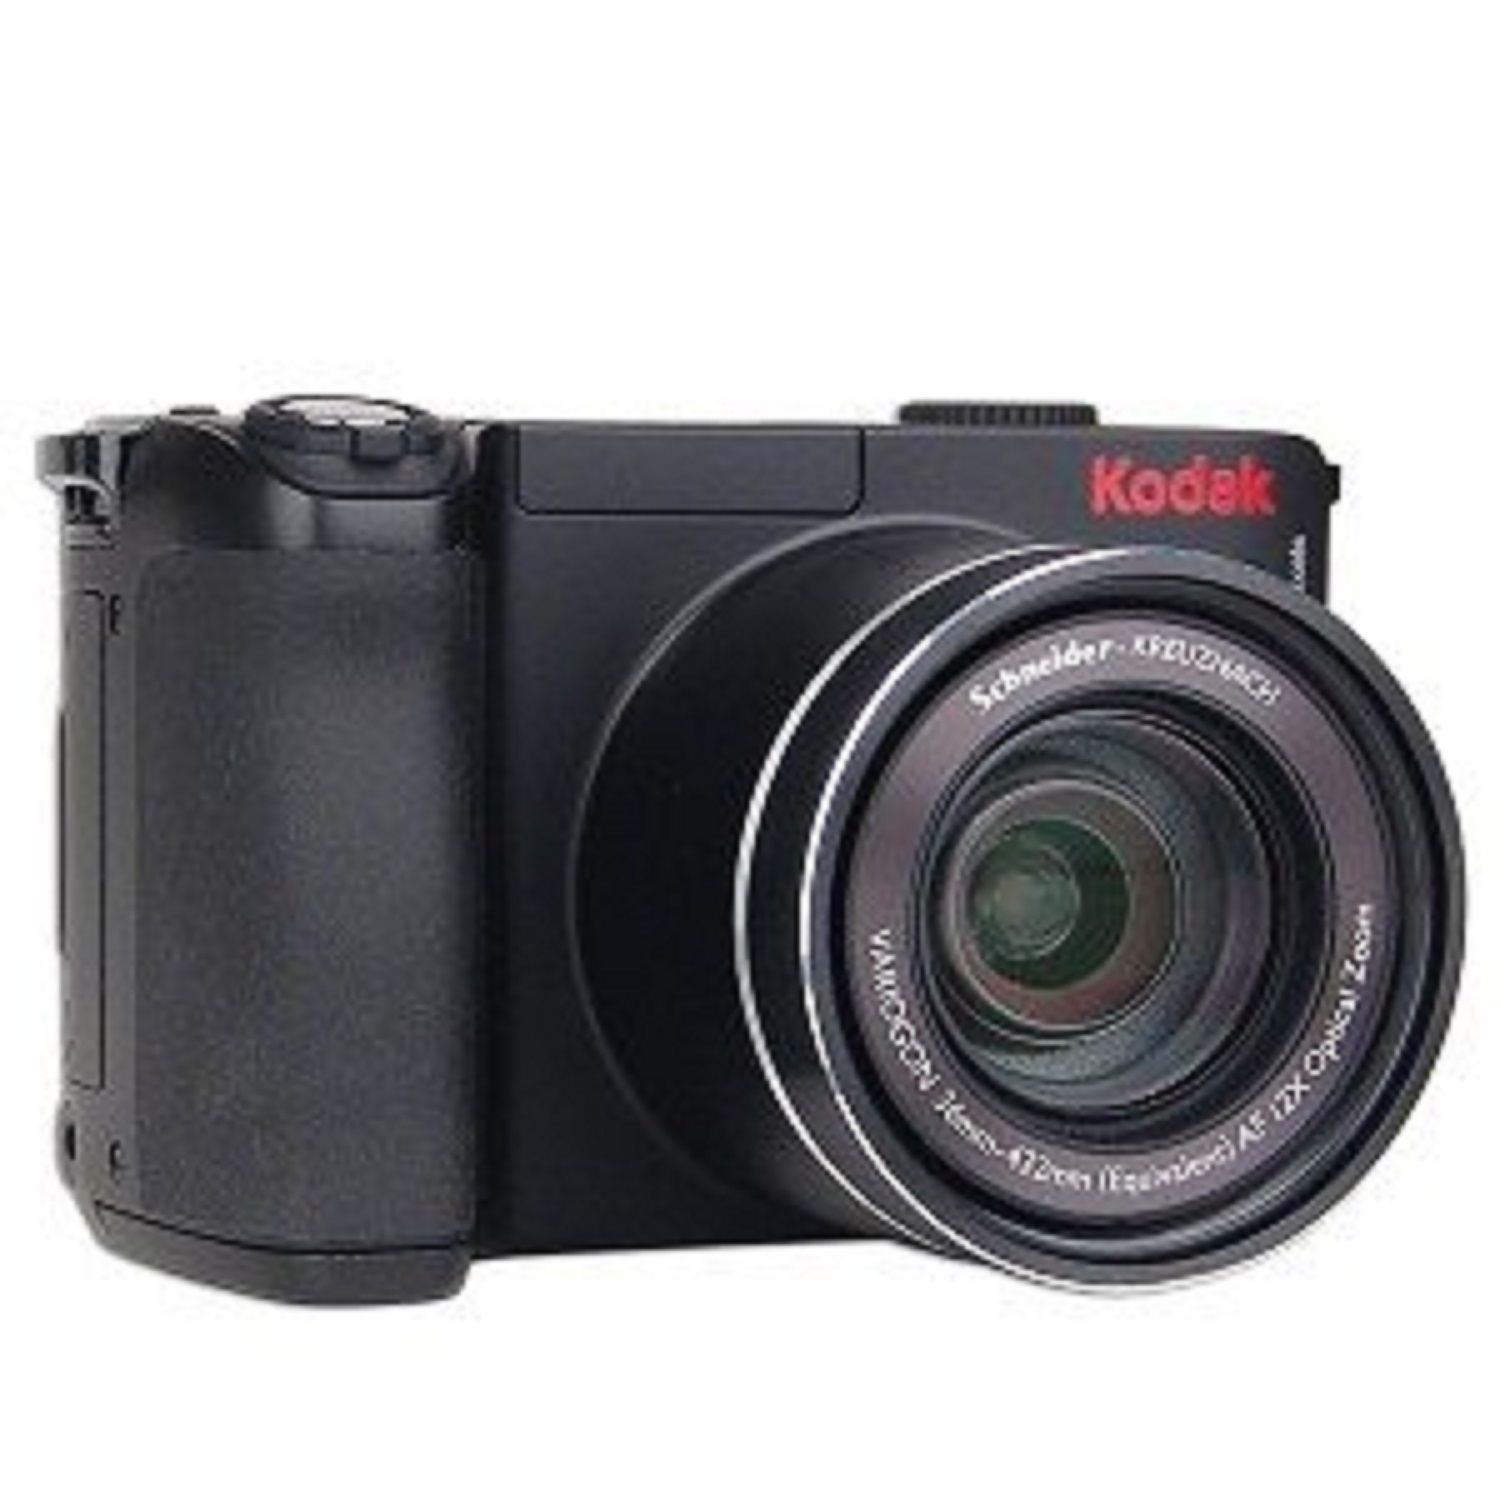 Digital Camera Kodak Easyshare Zd Megapixel 12 X Optical Zoom Black